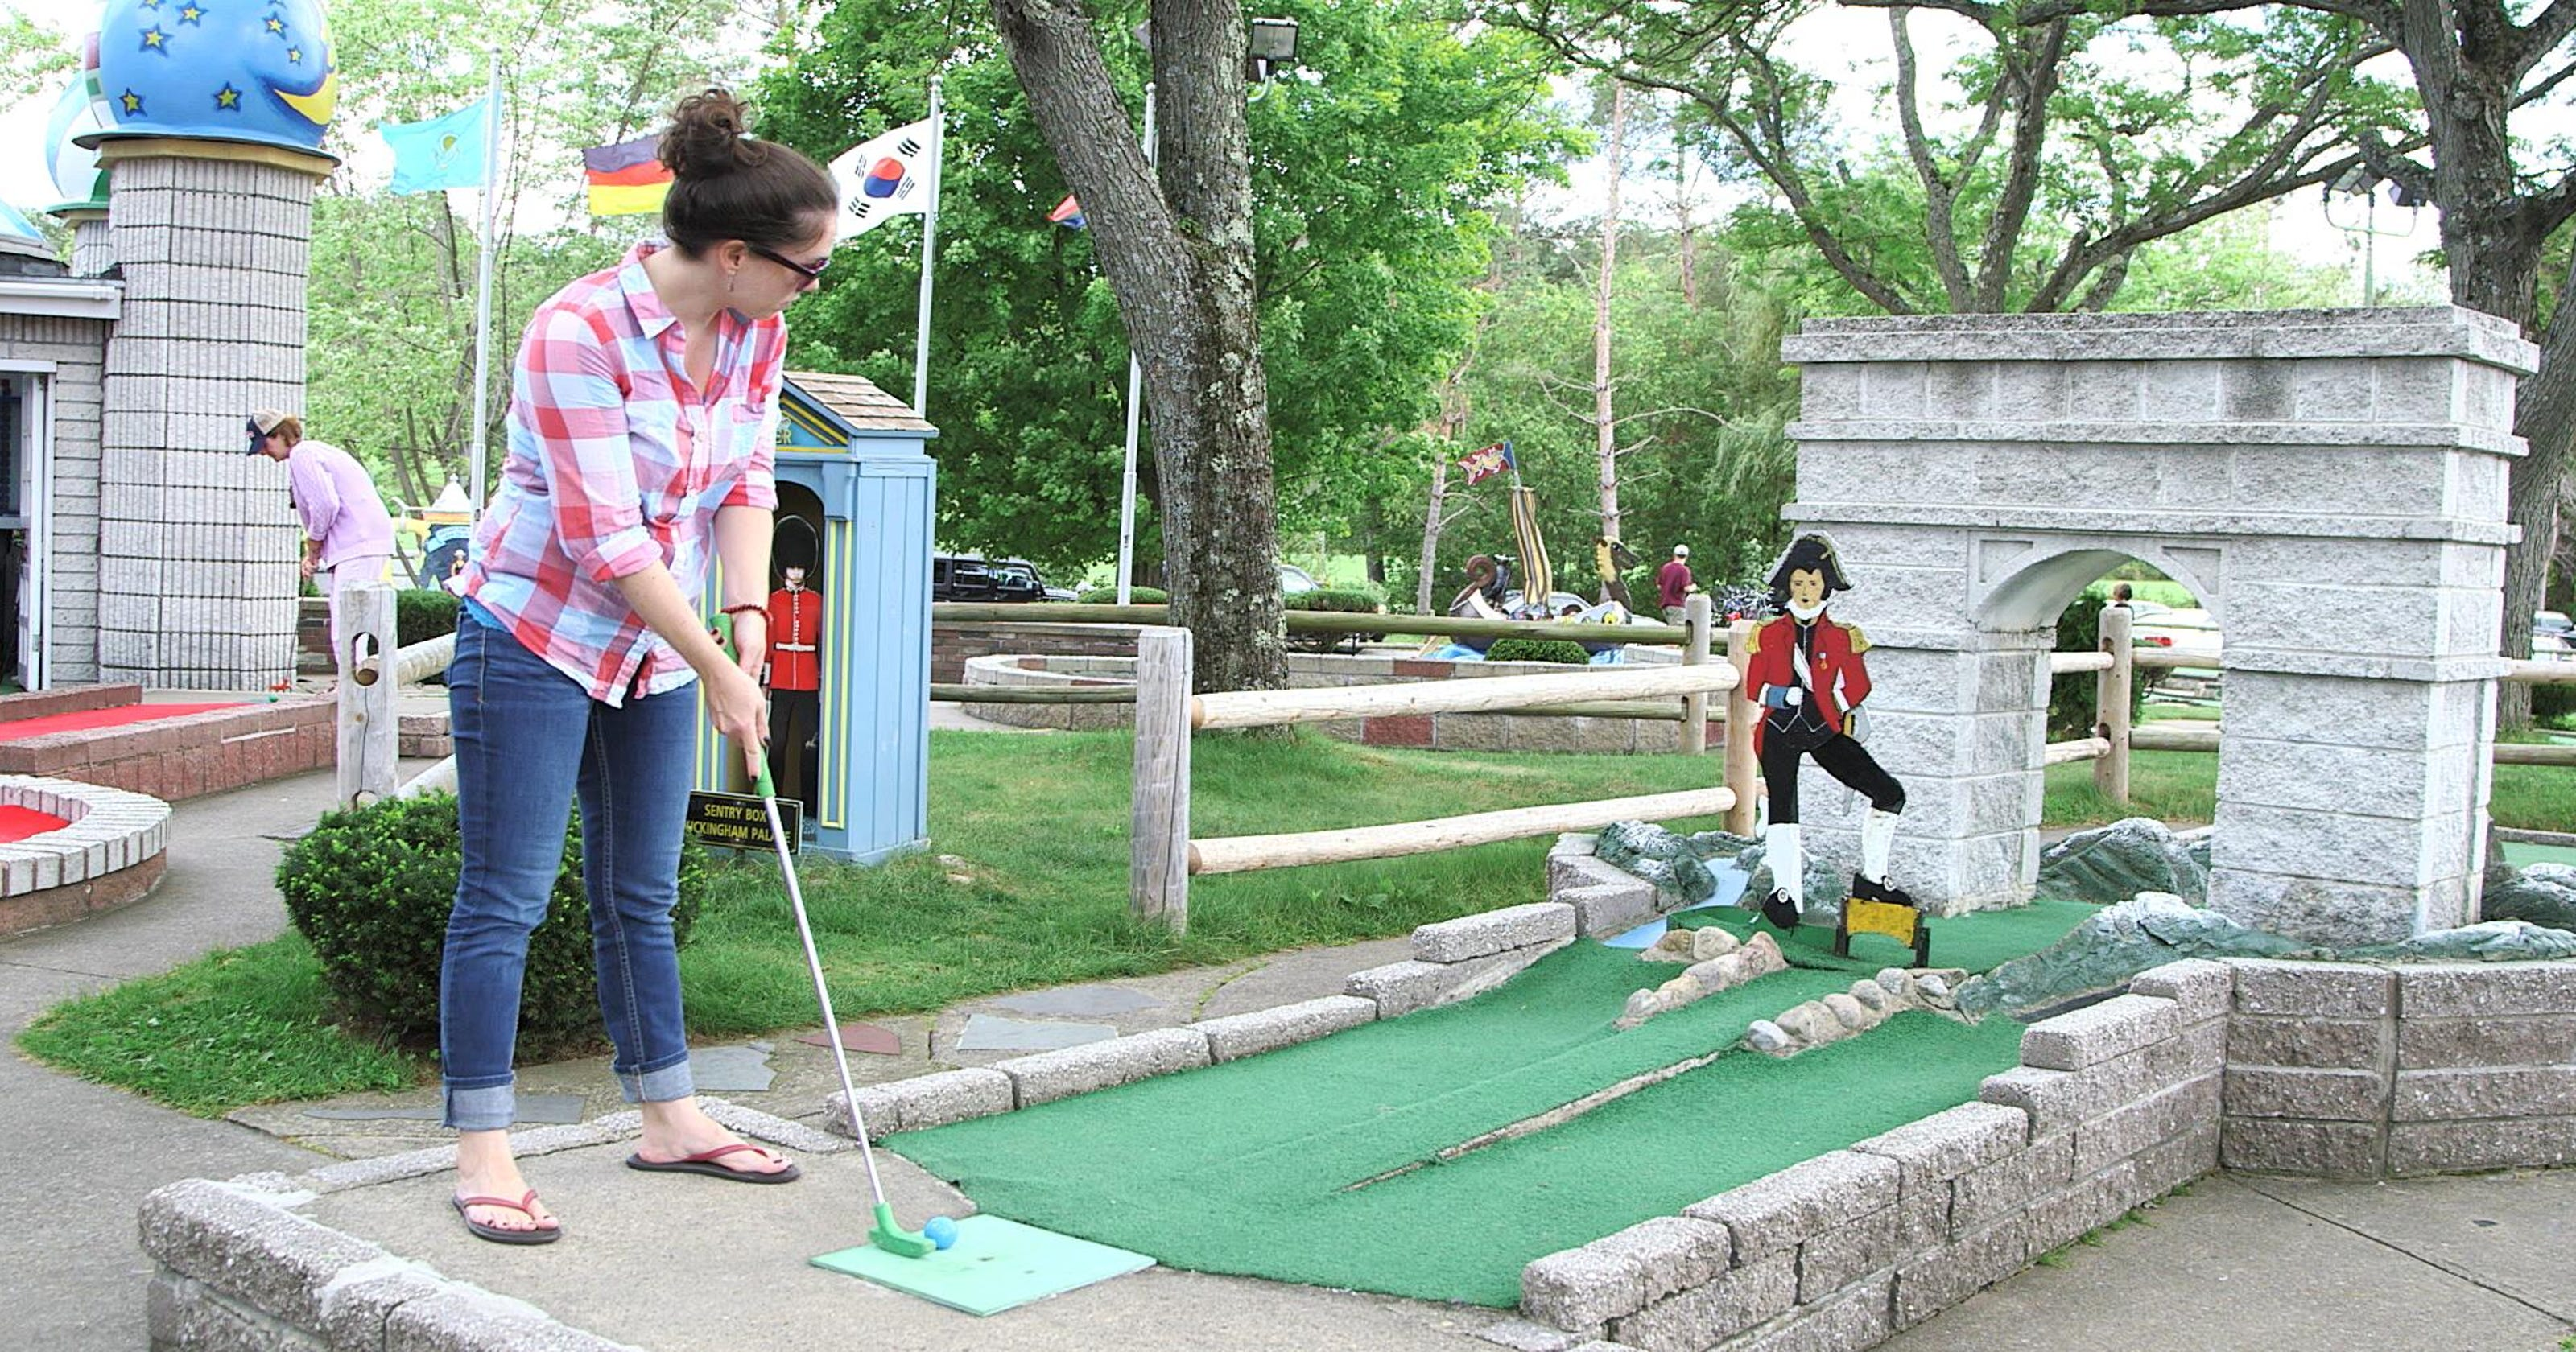 10 great courses to celete mini-golf's centennial on baseball golf, hockey golf, plinko golf,